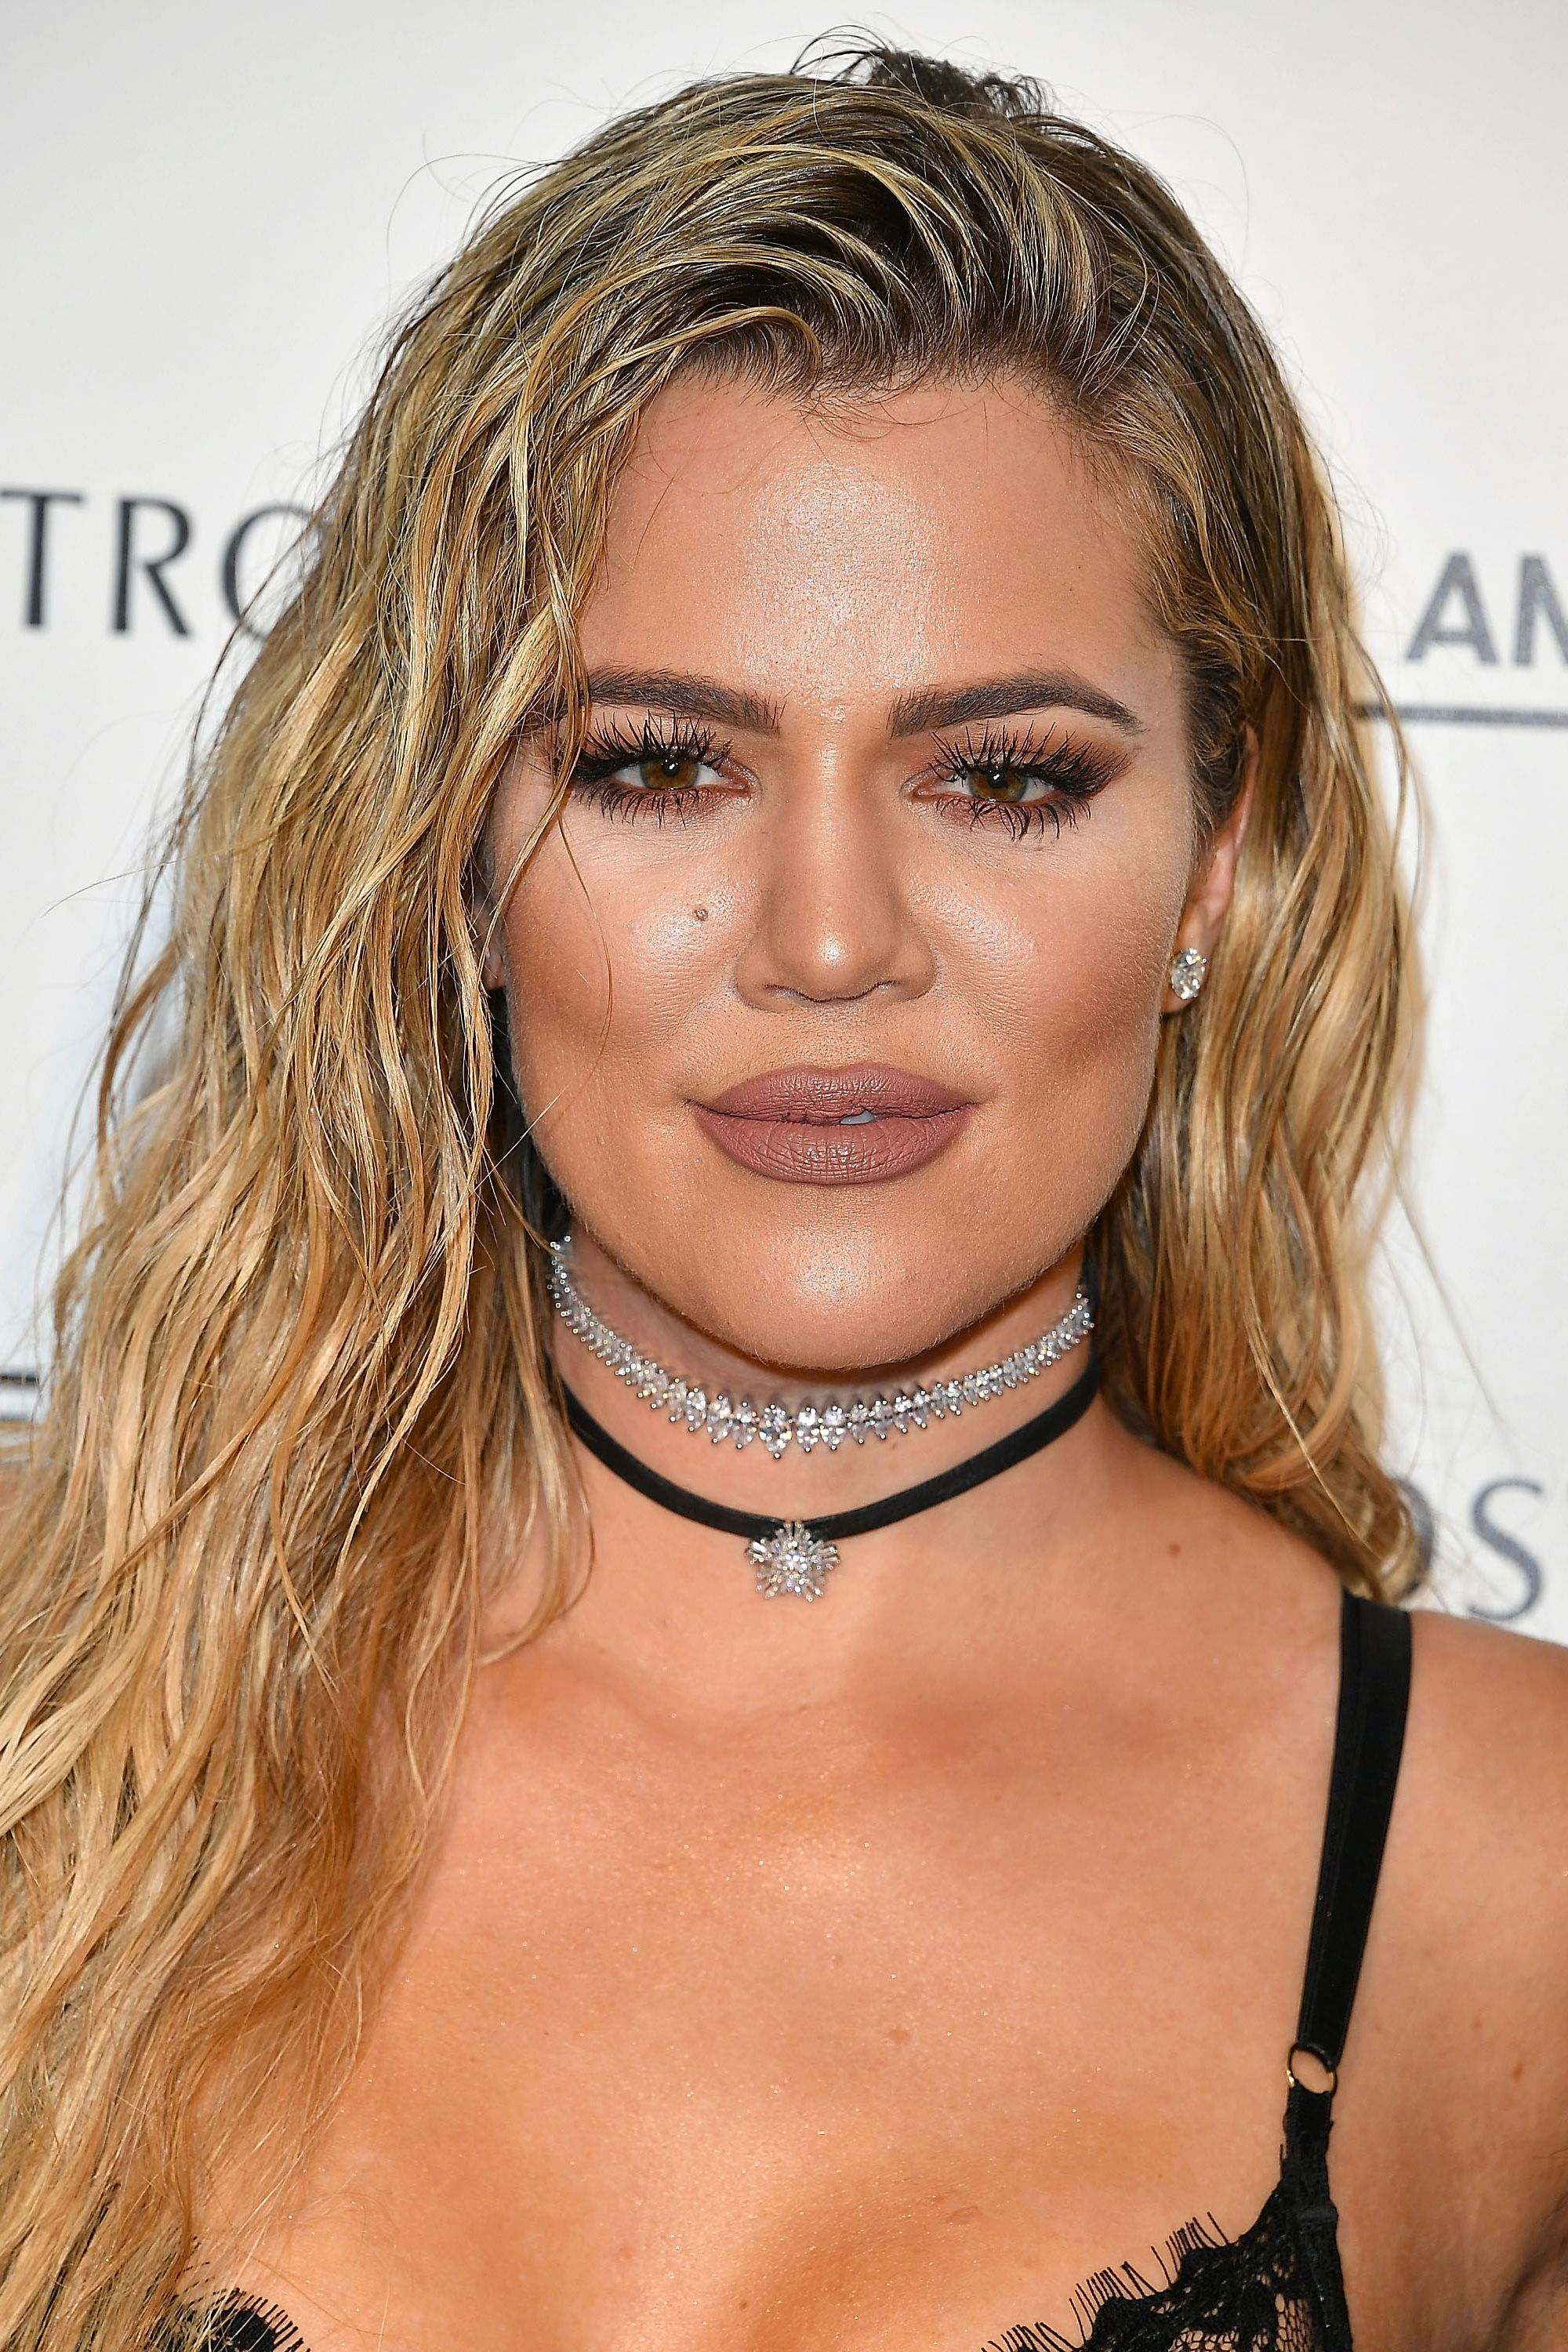 "<p>The&nbsp&#x3B;<em data-verified=""redactor"" data-redactor-tag=""em"">Keeping Up with the Kardashians</em><span class=""redactor-invisible-space"" data-verified=""redactor"" data-redactor-tag=""span"" data-redactor-class=""redactor-invisible-space""> reality star has been cheated on&nbsp&#x3B;more than once. She's spoken out about two separate instances.&nbsp&#x3B;</span></p><p><span class=""redactor-invisible-space"" data-verified=""redactor"" data-redactor-tag=""span"" data-redactor-class=""redactor-invisible-space""><strong data-redactor-tag=""strong"" data-verified=""redactor"">On her <a href=""http://www.redbookmag.com/love-sex/relationships/news/a48650/khloe-kardashian-name-change-party-divorce/"" target=""_blank"" data-tracking-id=""recirc-text-link"">ex-husband Lamar Odom's</a> cheating:&nbsp&#x3B;</strong>""Lamar was so great at making me feel like I was the only one and I was this princess, so I never speculated about his cheating,"" <a href=""http://www.usmagazine.com/celebrity-news/news/khloe-kardashian-details-lamar-odoms-cheating-on-howard-stern-w161575"" target=""_blank"" data-tracking-id=""recirc-text-link"">Kardashian said</a> during a January 2016 Howard Stern appearance. ""He was so good. Nothing was on his cellphones.""<span class=""redactor-invisible-space"" data-verified=""redactor"" data-redactor-tag=""span"" data-redactor-class=""redactor-invisible-space""></span></span></p><p><span class=""redactor-invisible-space"" data-verified=""redactor"" data-redactor-tag=""span"" data-redactor-class=""redactor-invisible-space""><span class=""redactor-invisible-space"" data-verified=""redactor"" data-redactor-tag=""span"" data-redactor-class=""redactor-invisible-space""><strong data-redactor-tag=""strong"" data-verified=""redactor"">On her ex-boyfriend James Harden's cheating:&nbsp&#x3B;</strong><span class=""redactor-invisible-space"" data-verified=""redactor"" data-redactor-tag=""span"" data-redactor-class=""redactor-invisible-space"">""I just don't want to put up with people that, you want to be monogamous, but then you're not monogamous,"" <a href=""http://www.refinery29.com/2016/02/103879/khloe-kardashian-james-harden-cheating"" target=""_blank"" data-tracking-id=""recirc-text-link"">Kardashian told guest Lisa Rinna</a> during an episode of&nbsp&#x3B;<em data-verified=""redactor"" data-redactor-tag=""em"">Kocktails with Khloé.</em></span><br></span></span></p><p><span class=""redactor-invisible-space"" data-verified=""redactor"" data-redactor-tag=""span"" data-redactor-class=""redactor-invisible-space""><span class=""redactor-invisible-space"" data-verified=""redactor"" data-redactor-tag=""span"" data-redactor-class=""redactor-invisible-space""><span class=""redactor-invisible-space"" data-verified=""redactor"" data-redactor-tag=""span"" data-redactor-class=""redactor-invisible-space""><span class=""redactor-invisible-space"" data-verified=""redactor"" data-redactor-tag=""span"" data-redactor-class=""redactor-invisible-space""><strong data-redactor-tag=""strong"" data-verified=""redactor"">RELATED:&nbsp&#x3B;</strong></span></span></span></span><a href=""http://www.redbookmag.com/love-sex/relationships/g4140/biggest-celebrity-divorce-settlements/""></a><strong data-redactor-tag=""strong"" data-verified=""redactor""><a href=""http://www.redbookmag.com/love-sex/relationships/g4140/biggest-celebrity-divorce-settlements/"" target=""_blank"" data-tracking-id=""recirc-text-link"">These 17 Celebrity Couples Had the Biggest Divorce Settlements</a></strong></p>"